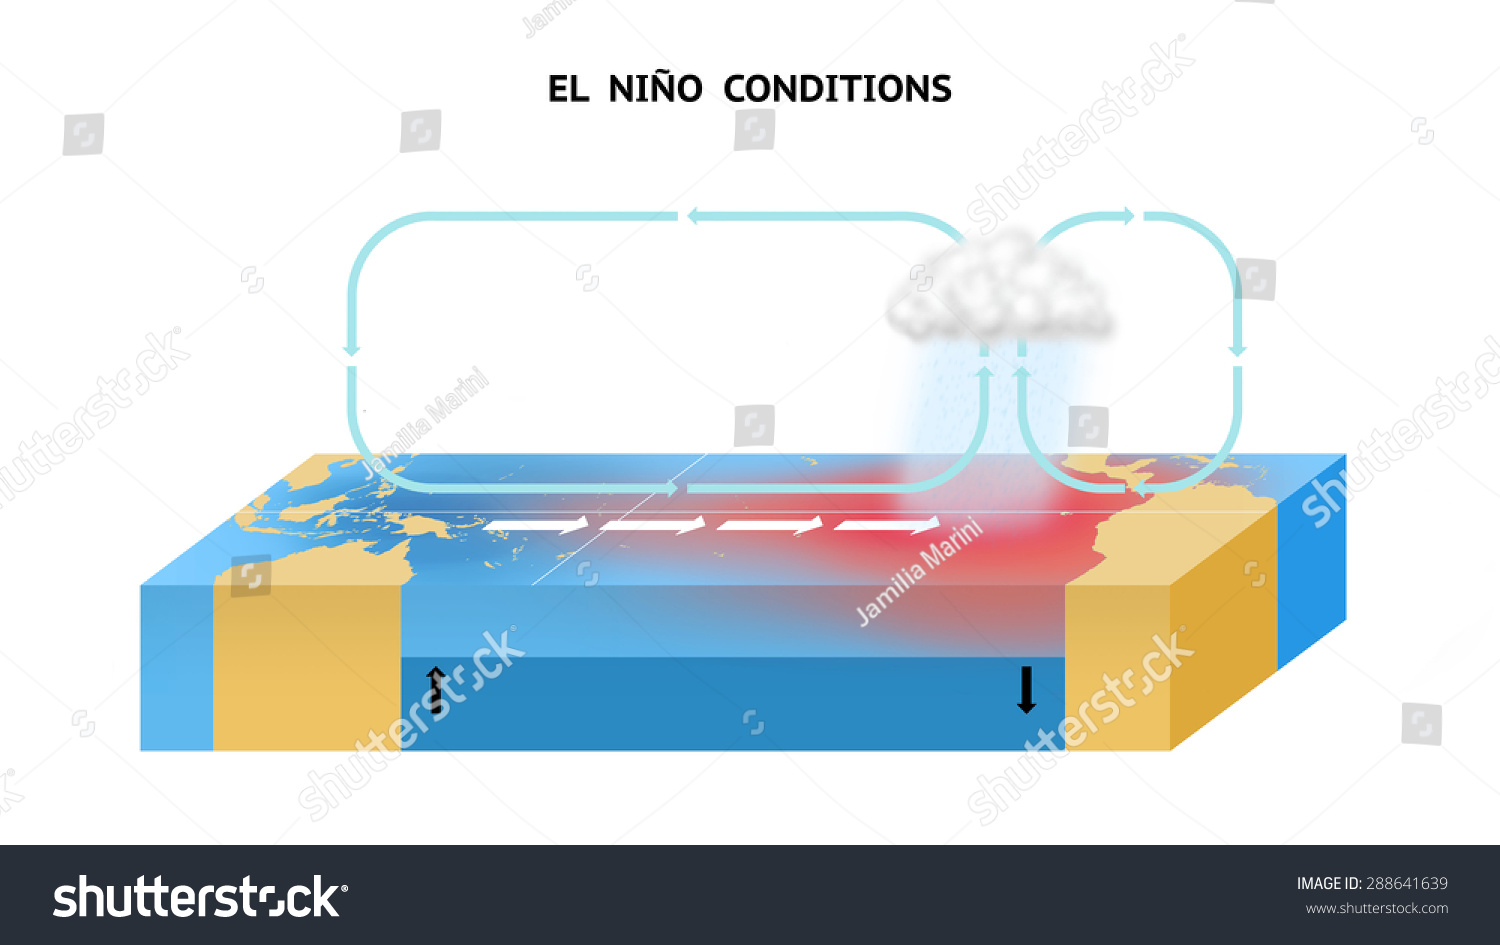 El Nino Conditions Equatorial Pacific Ocean Stock Illustration ...